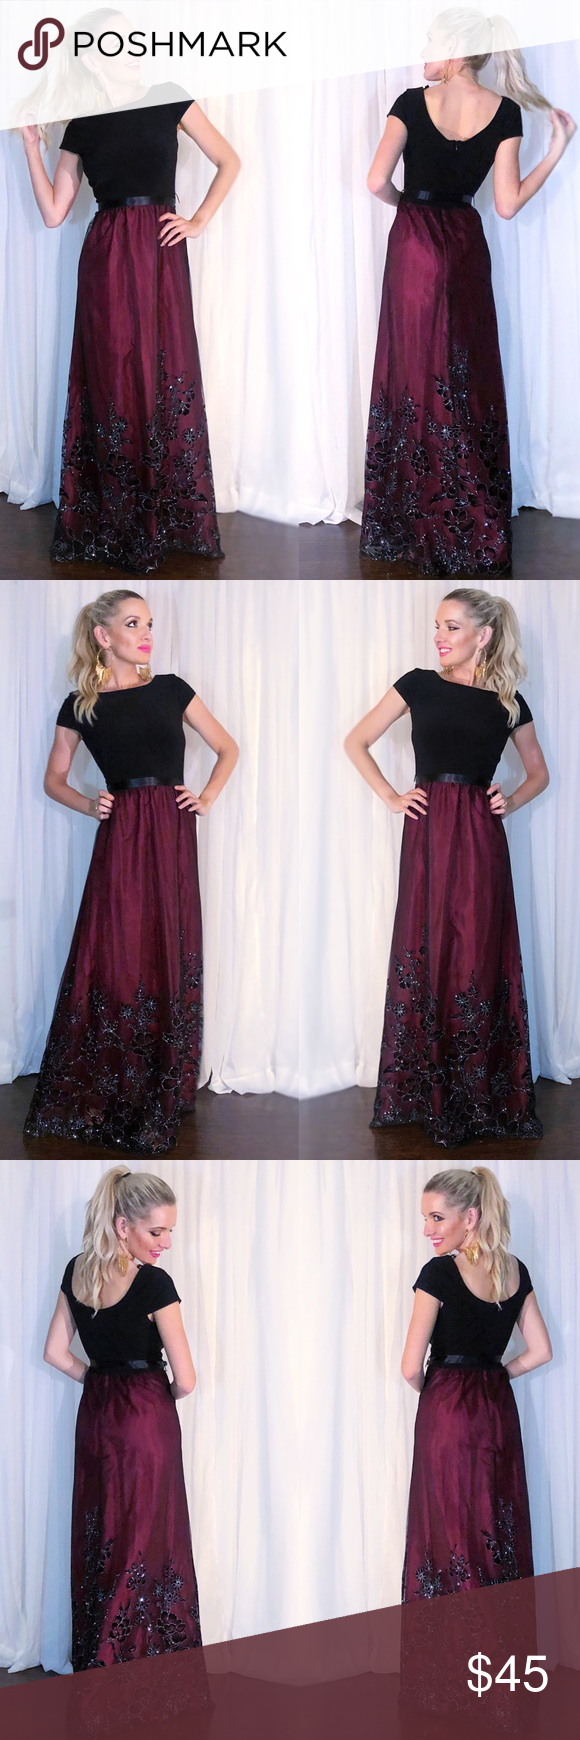 Burgundy sparkly black lace classy evening gown boutique my posh